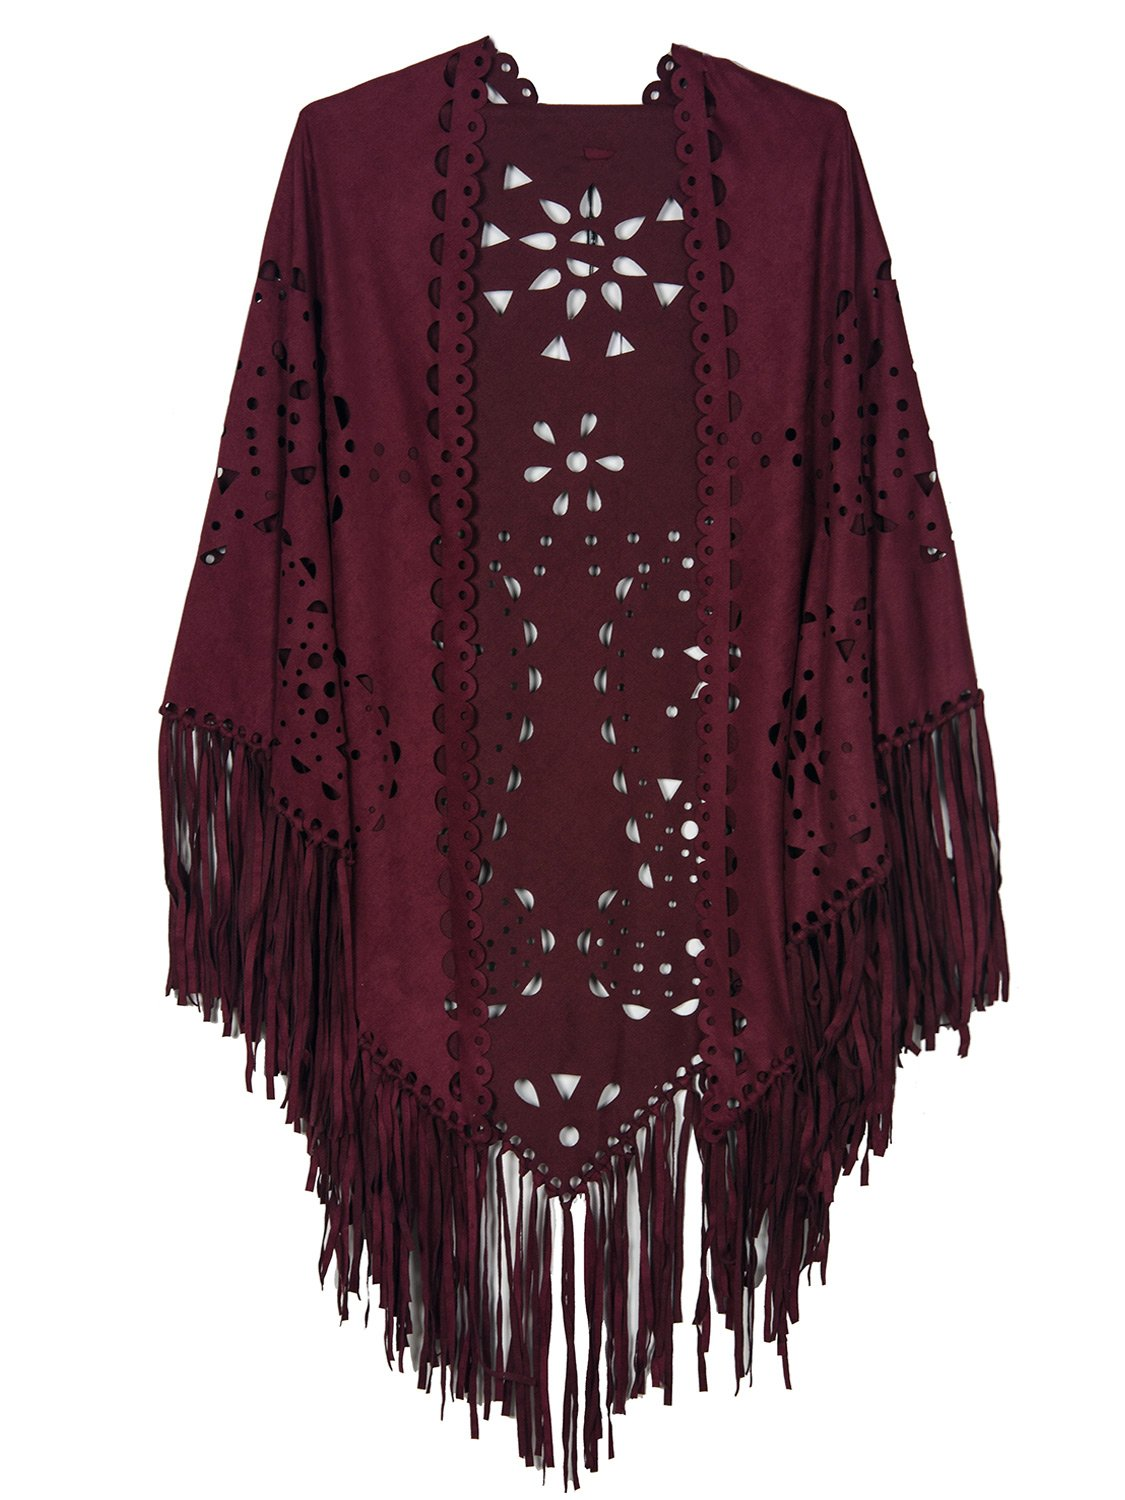 Women's Suedette Laser Cut Fringed Cape Shawl Triangle Wrap Scarf by PERSUN